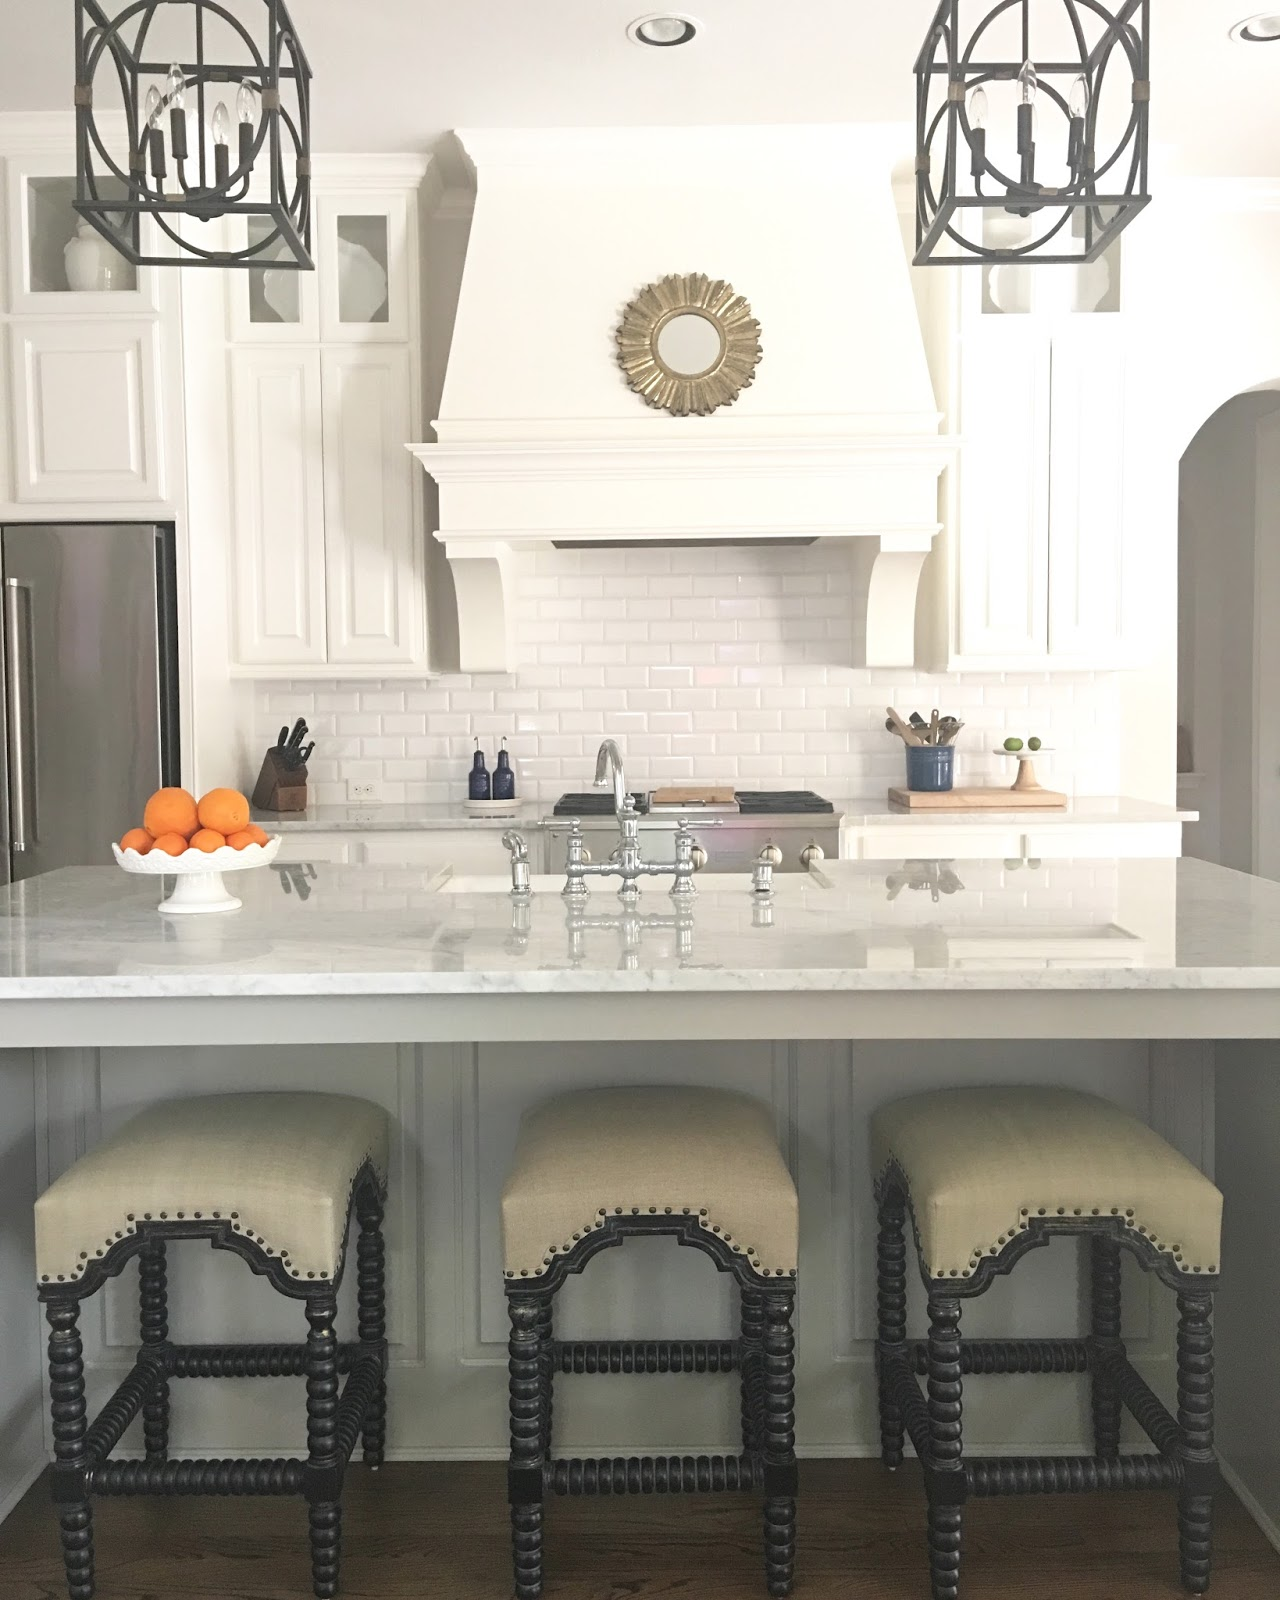 Nice I finally styled my glass kitchen cabinets in a matter of hours Now I um scratching my head wondering why I didn ut do this last year